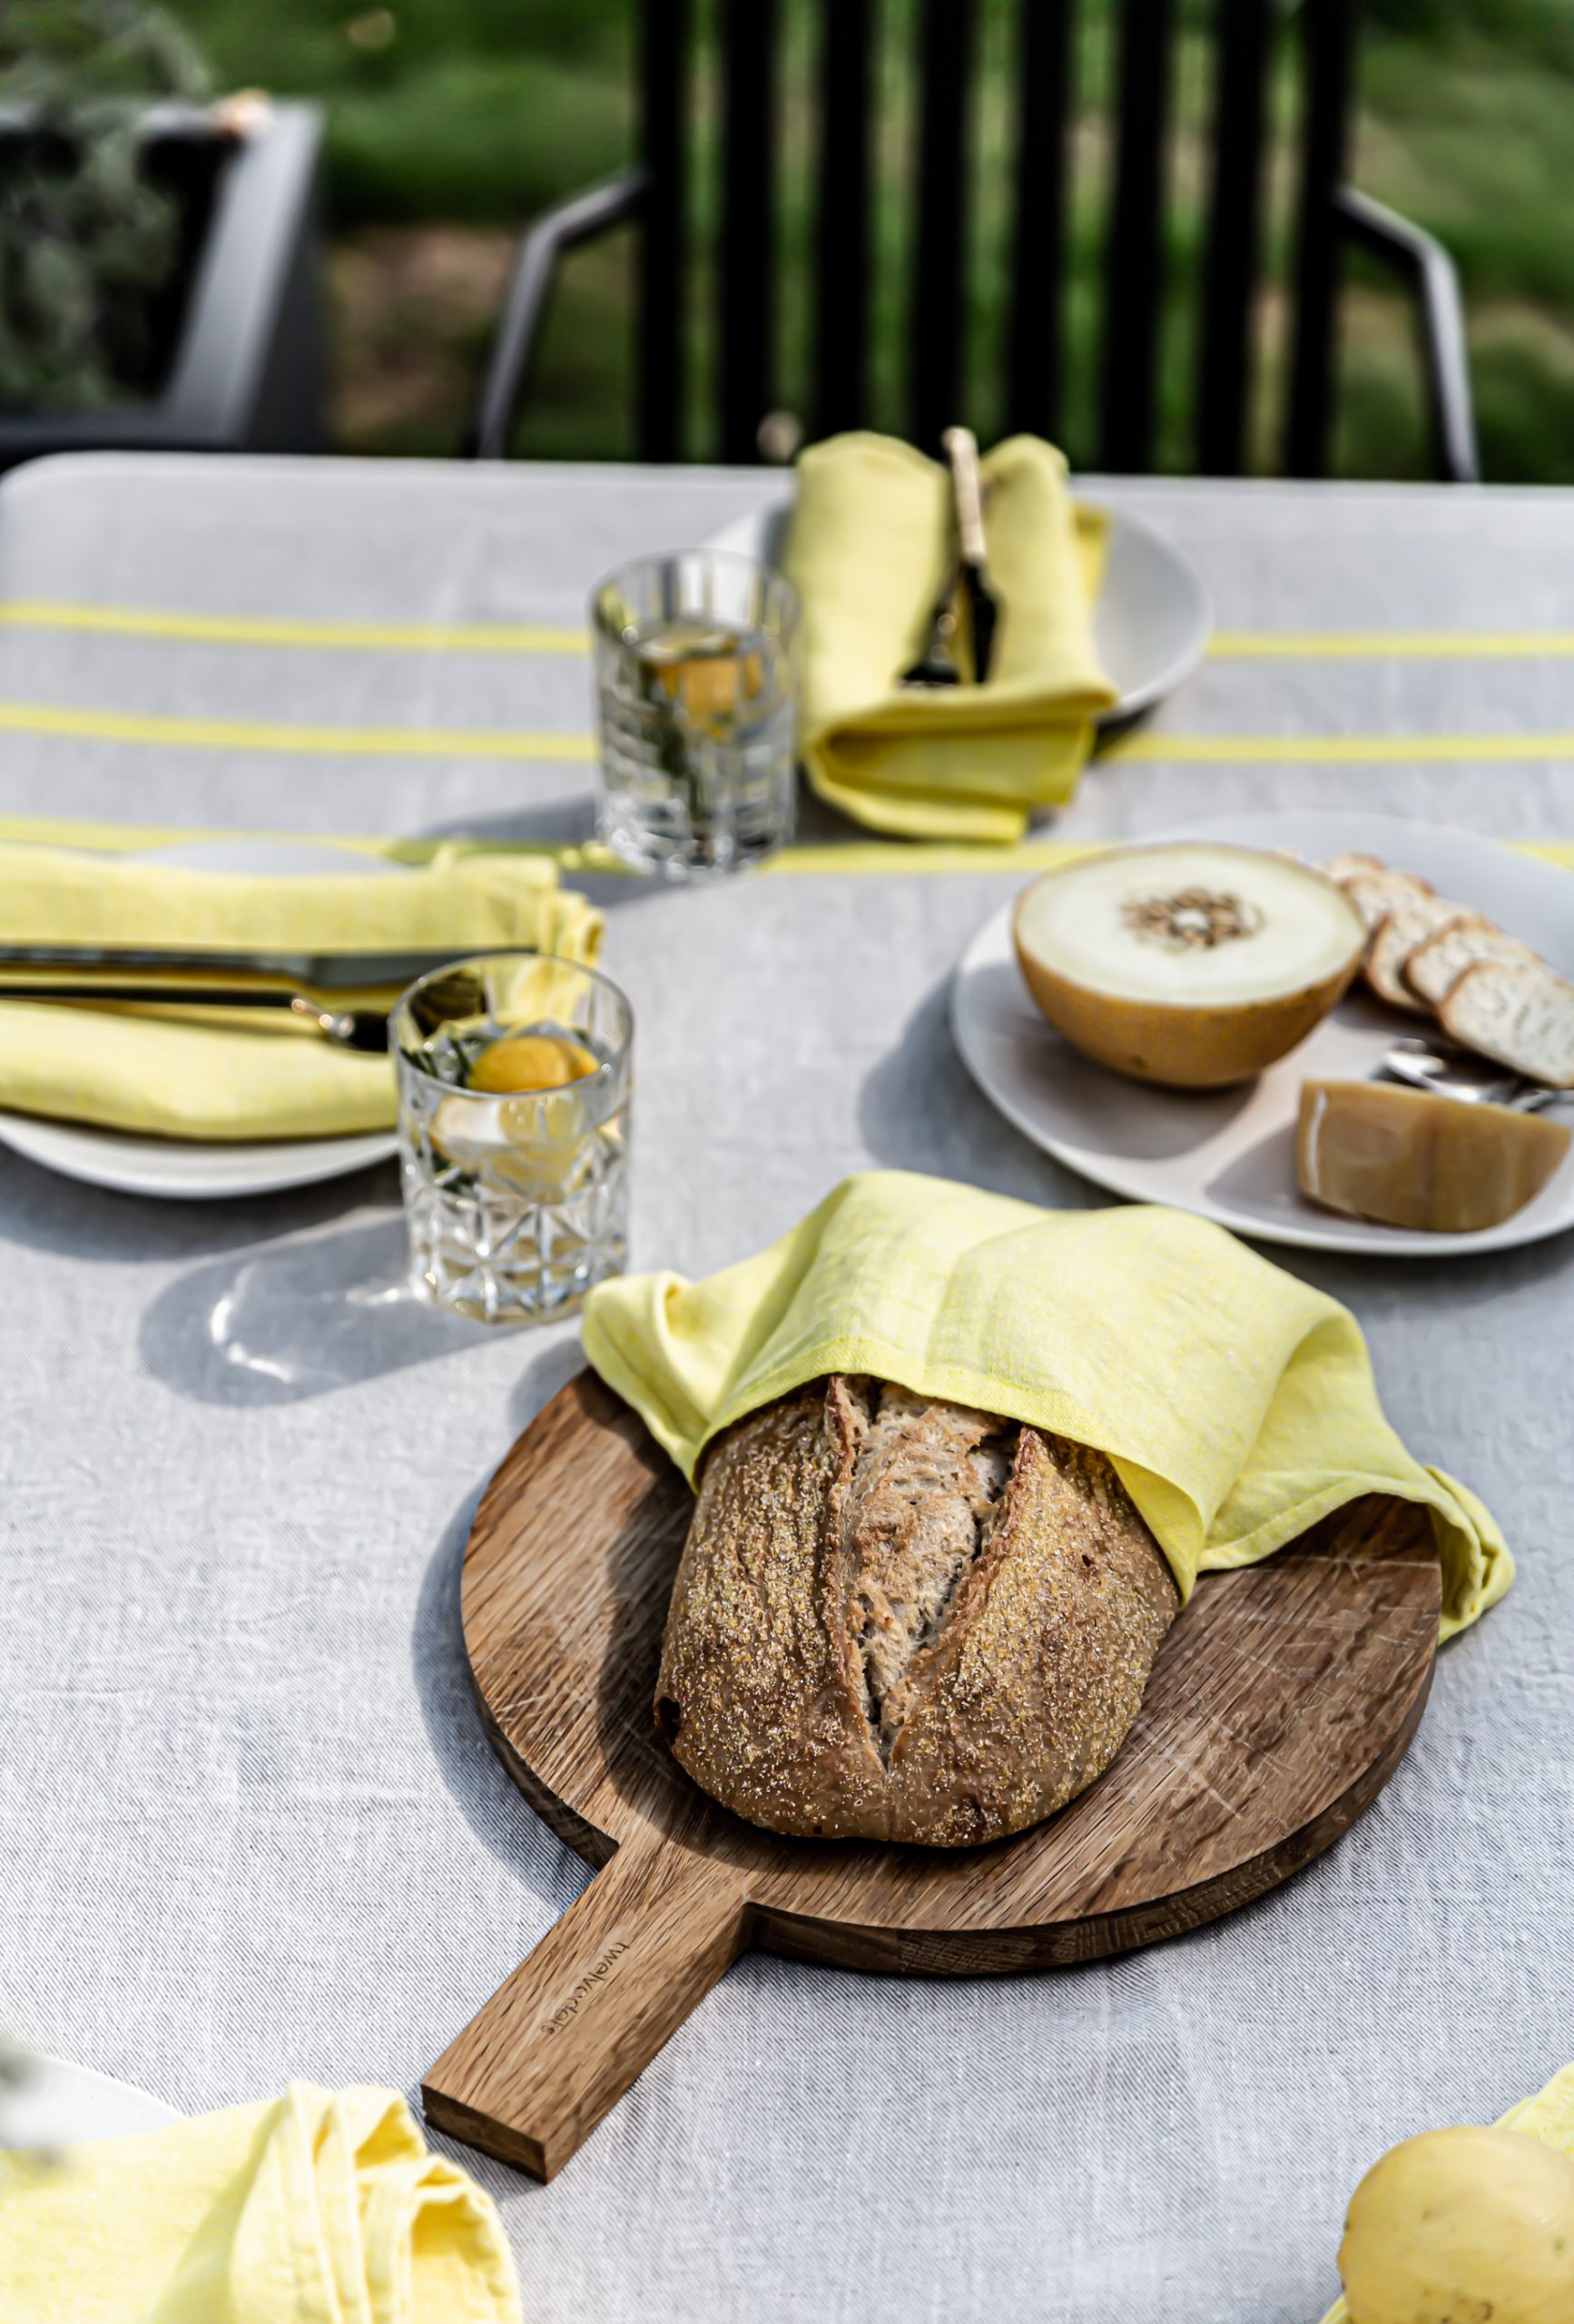 Summer Outdoor table setting ecological linen table cloth